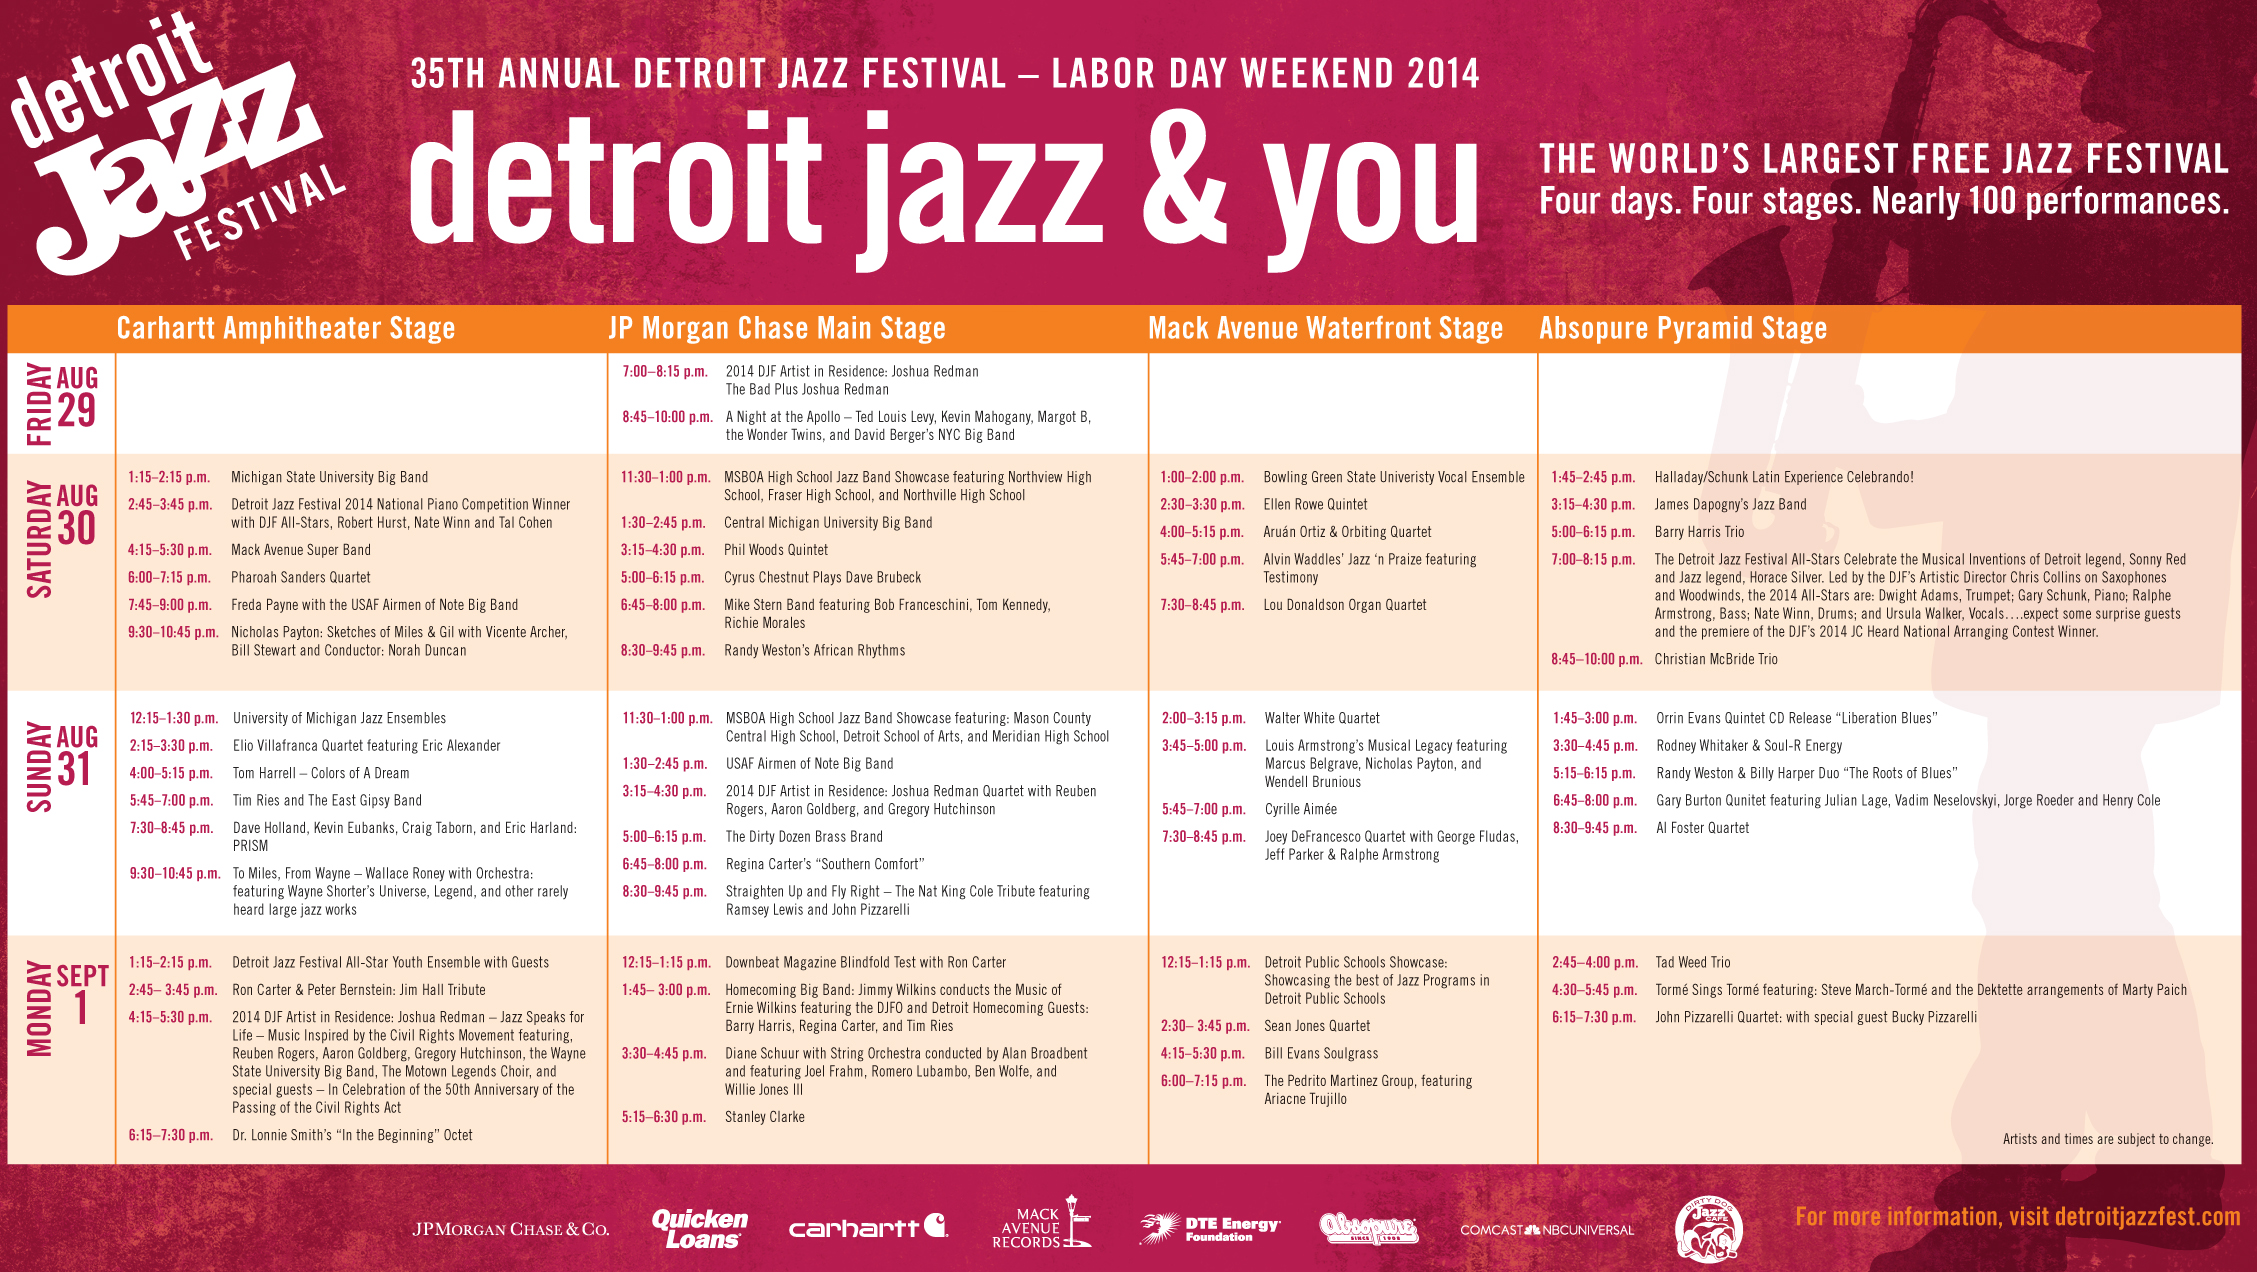 Here S The Complete Detroit Jazz Festival Weekend Schedule 105 9